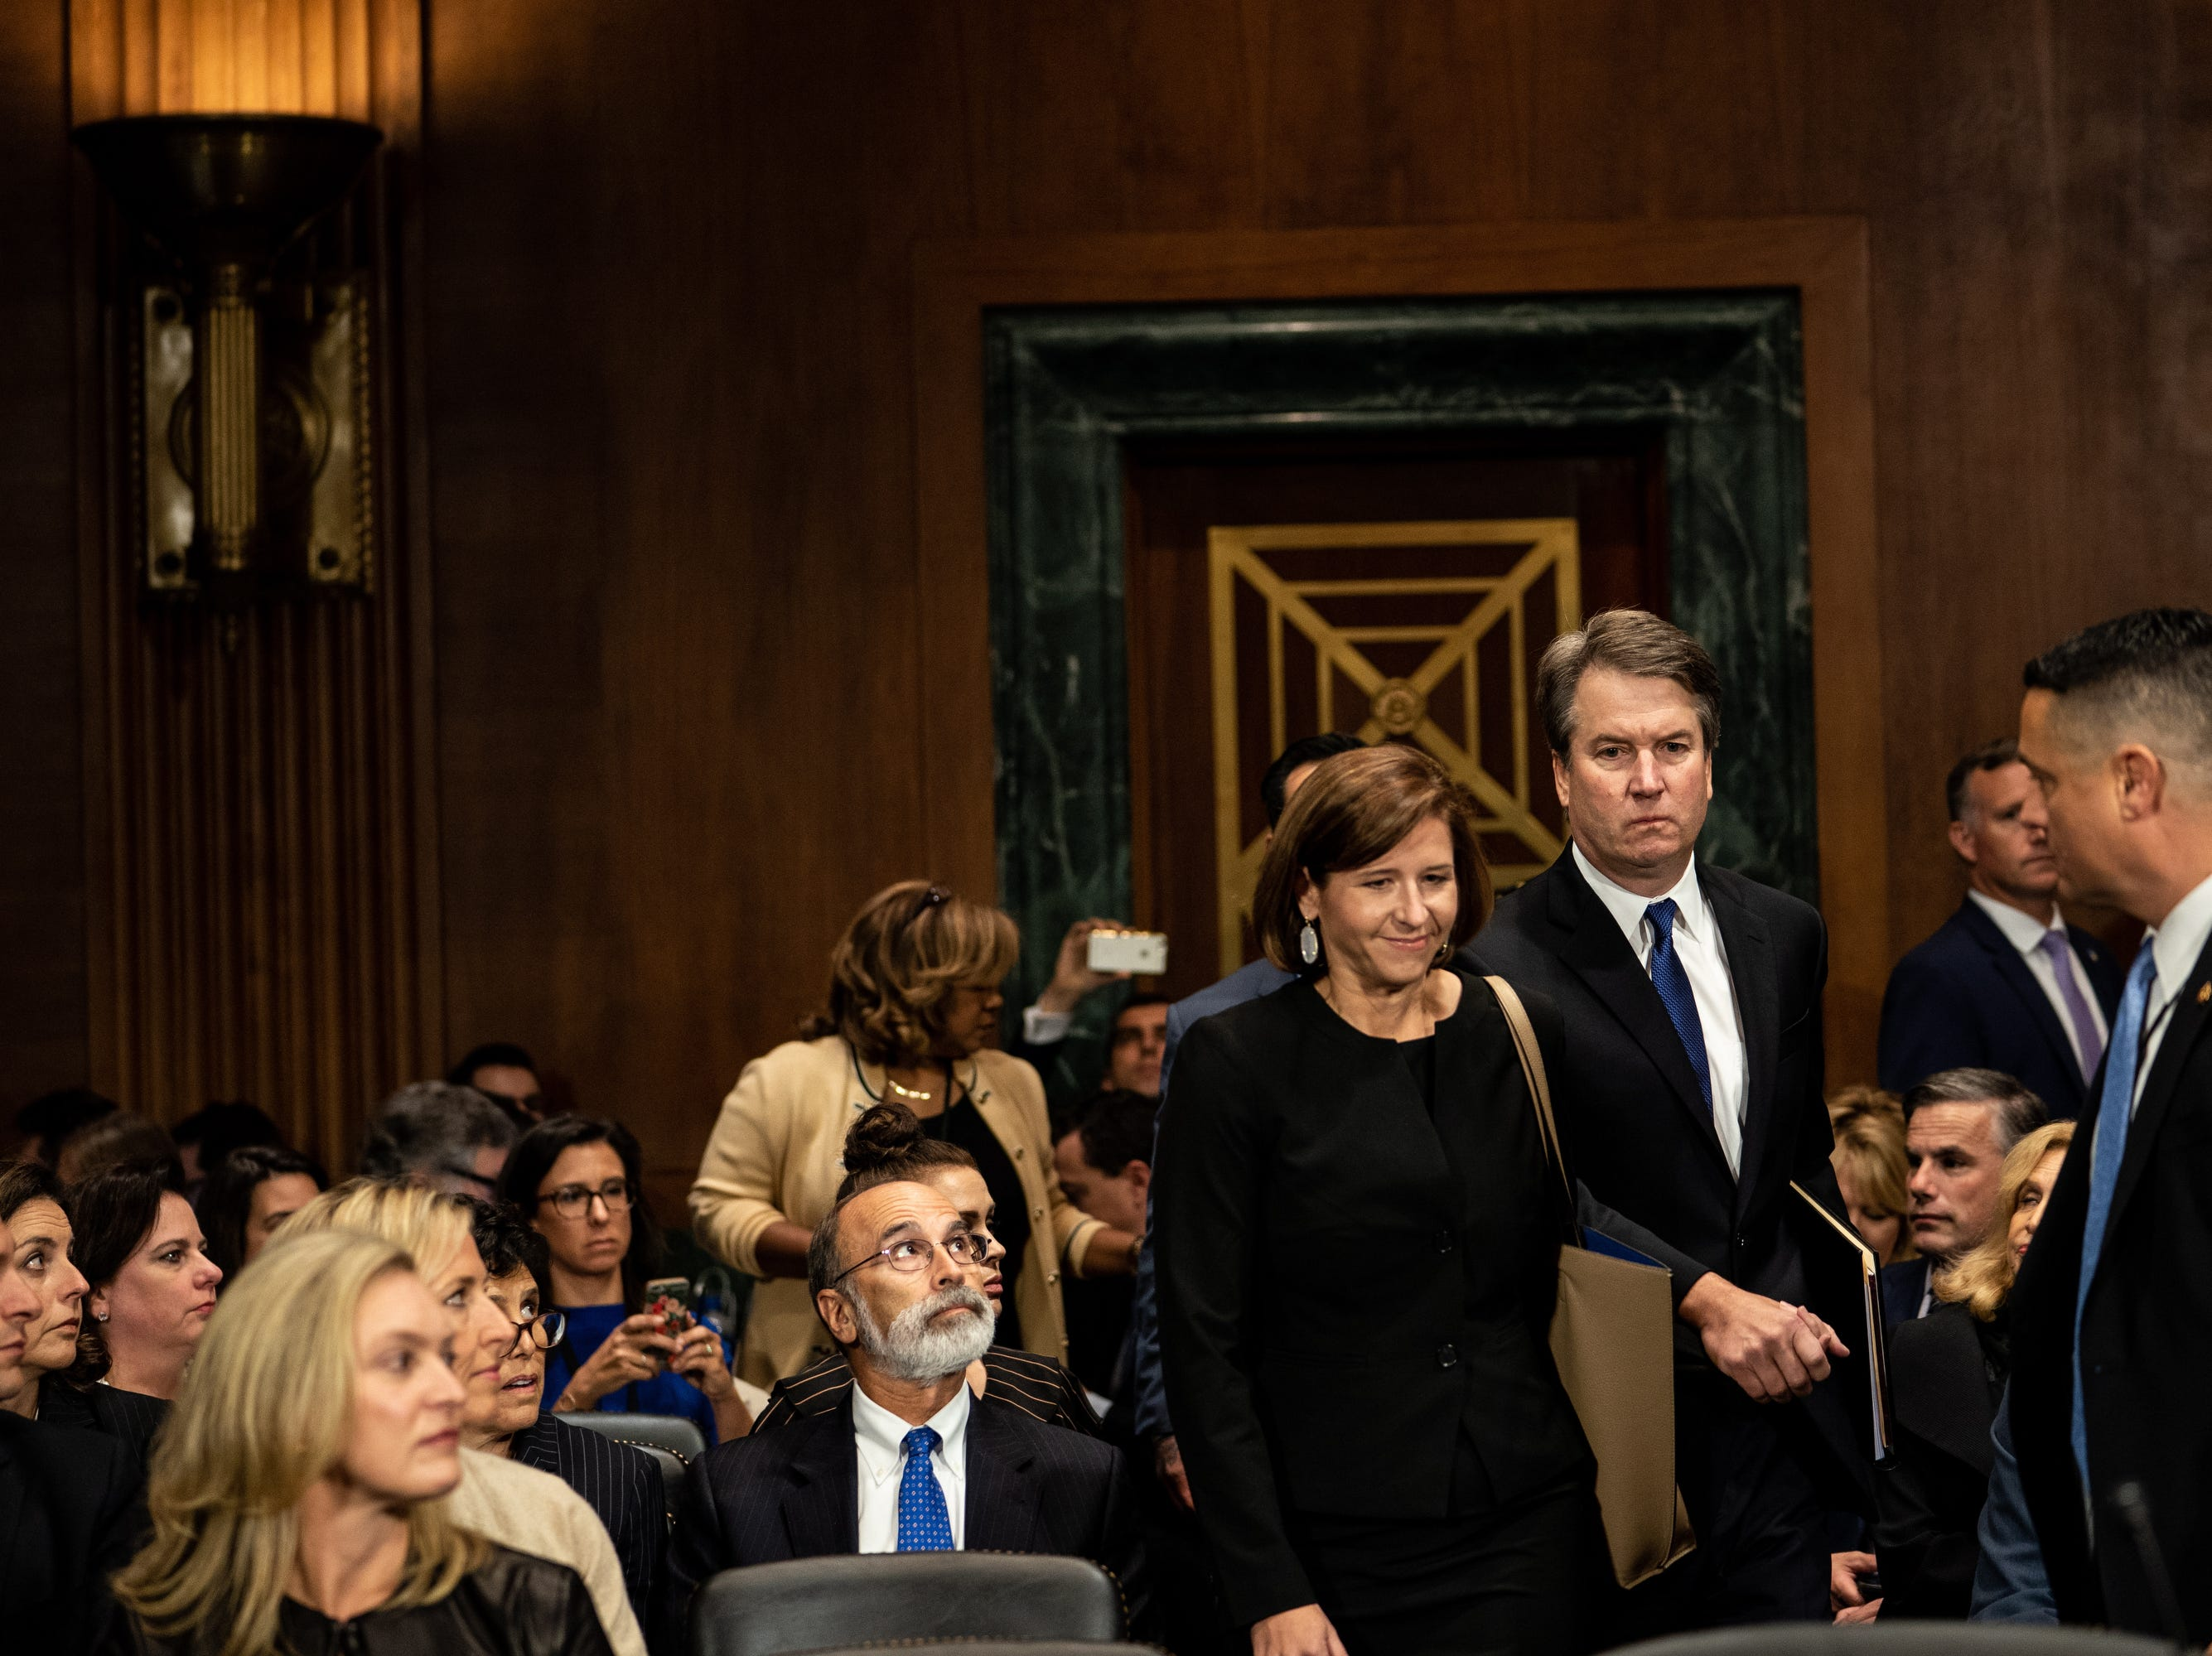 Supreme Court nominee Judge Brett Kavanaugh (C-R) with his wife Ashley (C-L) attend the Senate Judiciary Committee hearing on his nomination to be an associate justice of the Supreme Court of the United States. Trump's nominee to be a US Supreme Court associate justice Brett Kavanaugh is in a tumultuous confirmation process as multiple women have accused Kavanaugh of sexual misconduct.